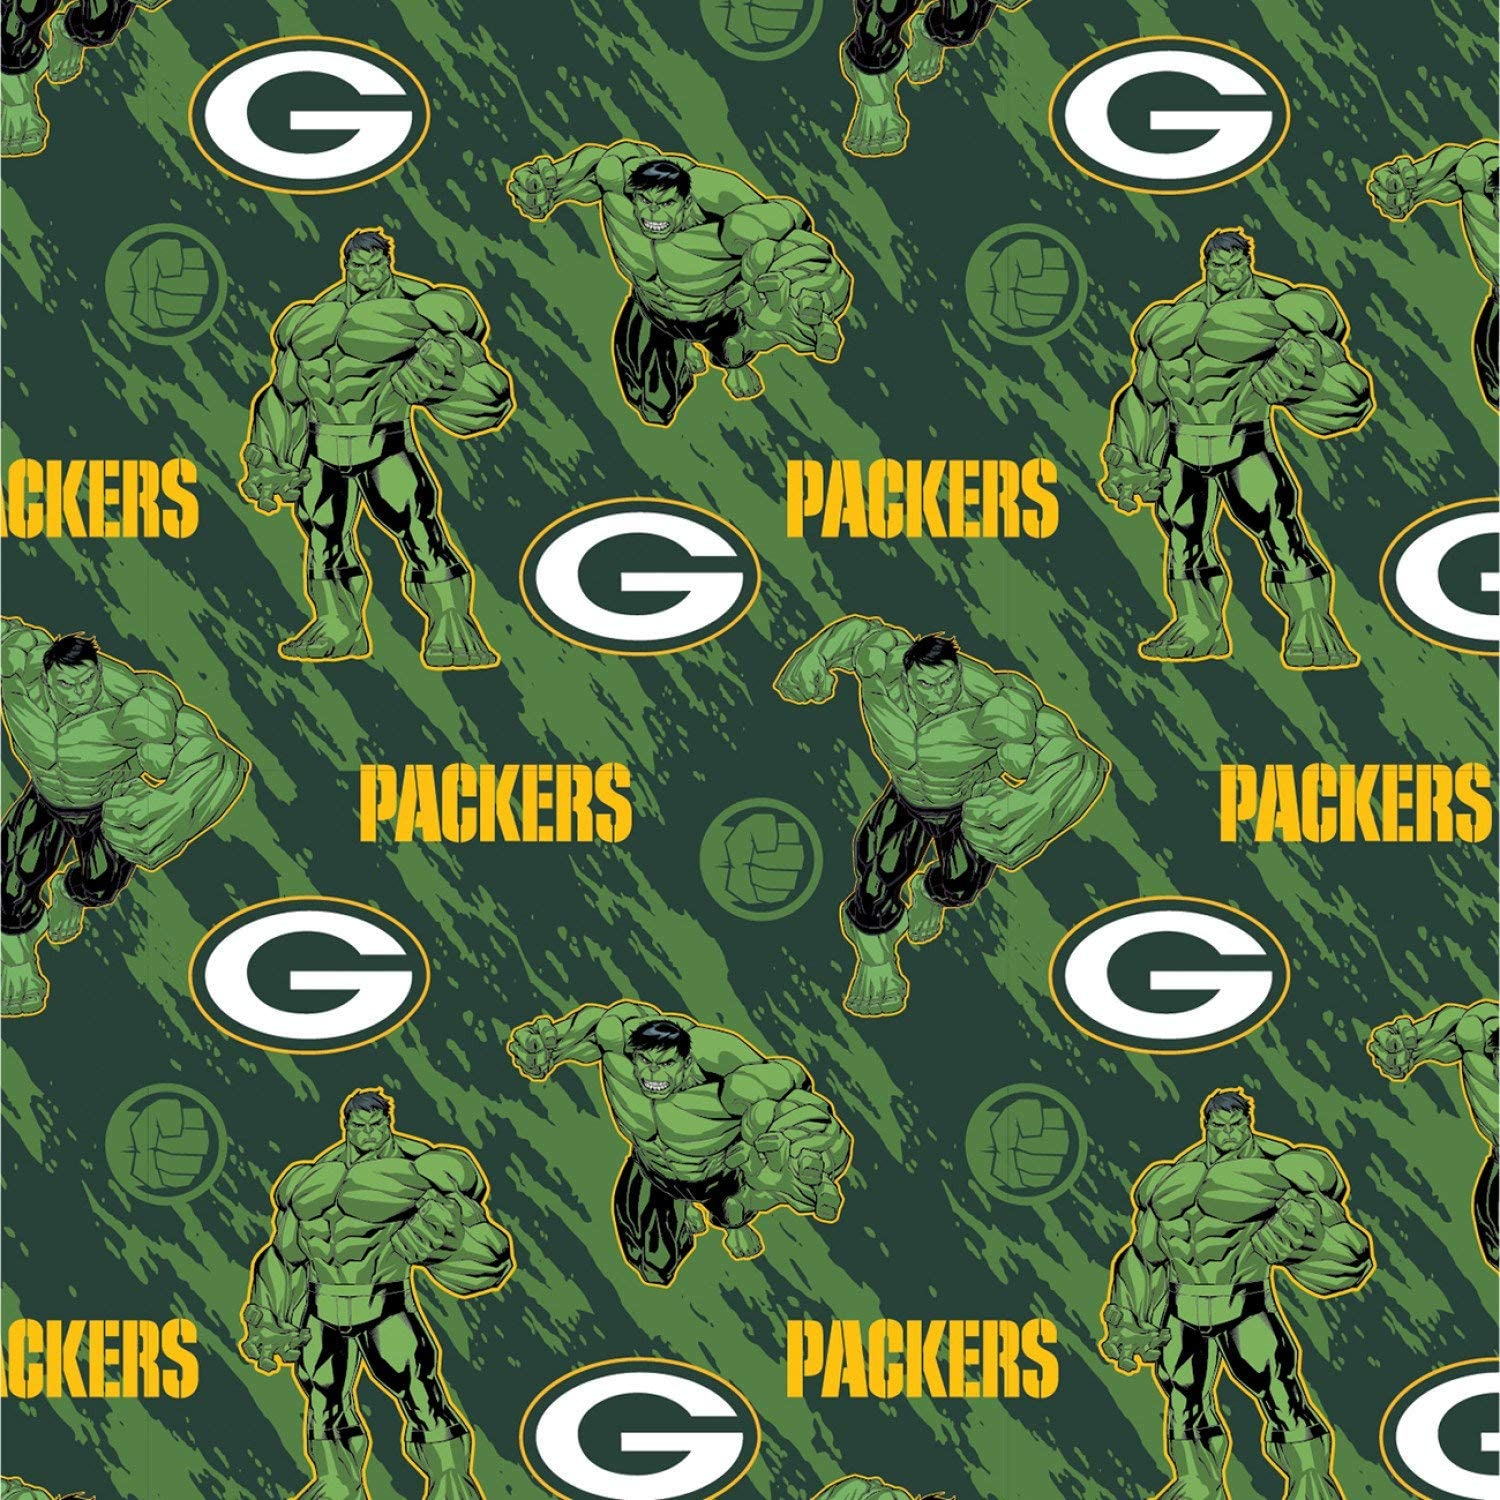 Amazon Com Nfl Marvel Mash Up Fabric Hulk Green Bay Packers Fabric Nfl Football In Green 44 Wide 100 Cotton Fabric By The Yard